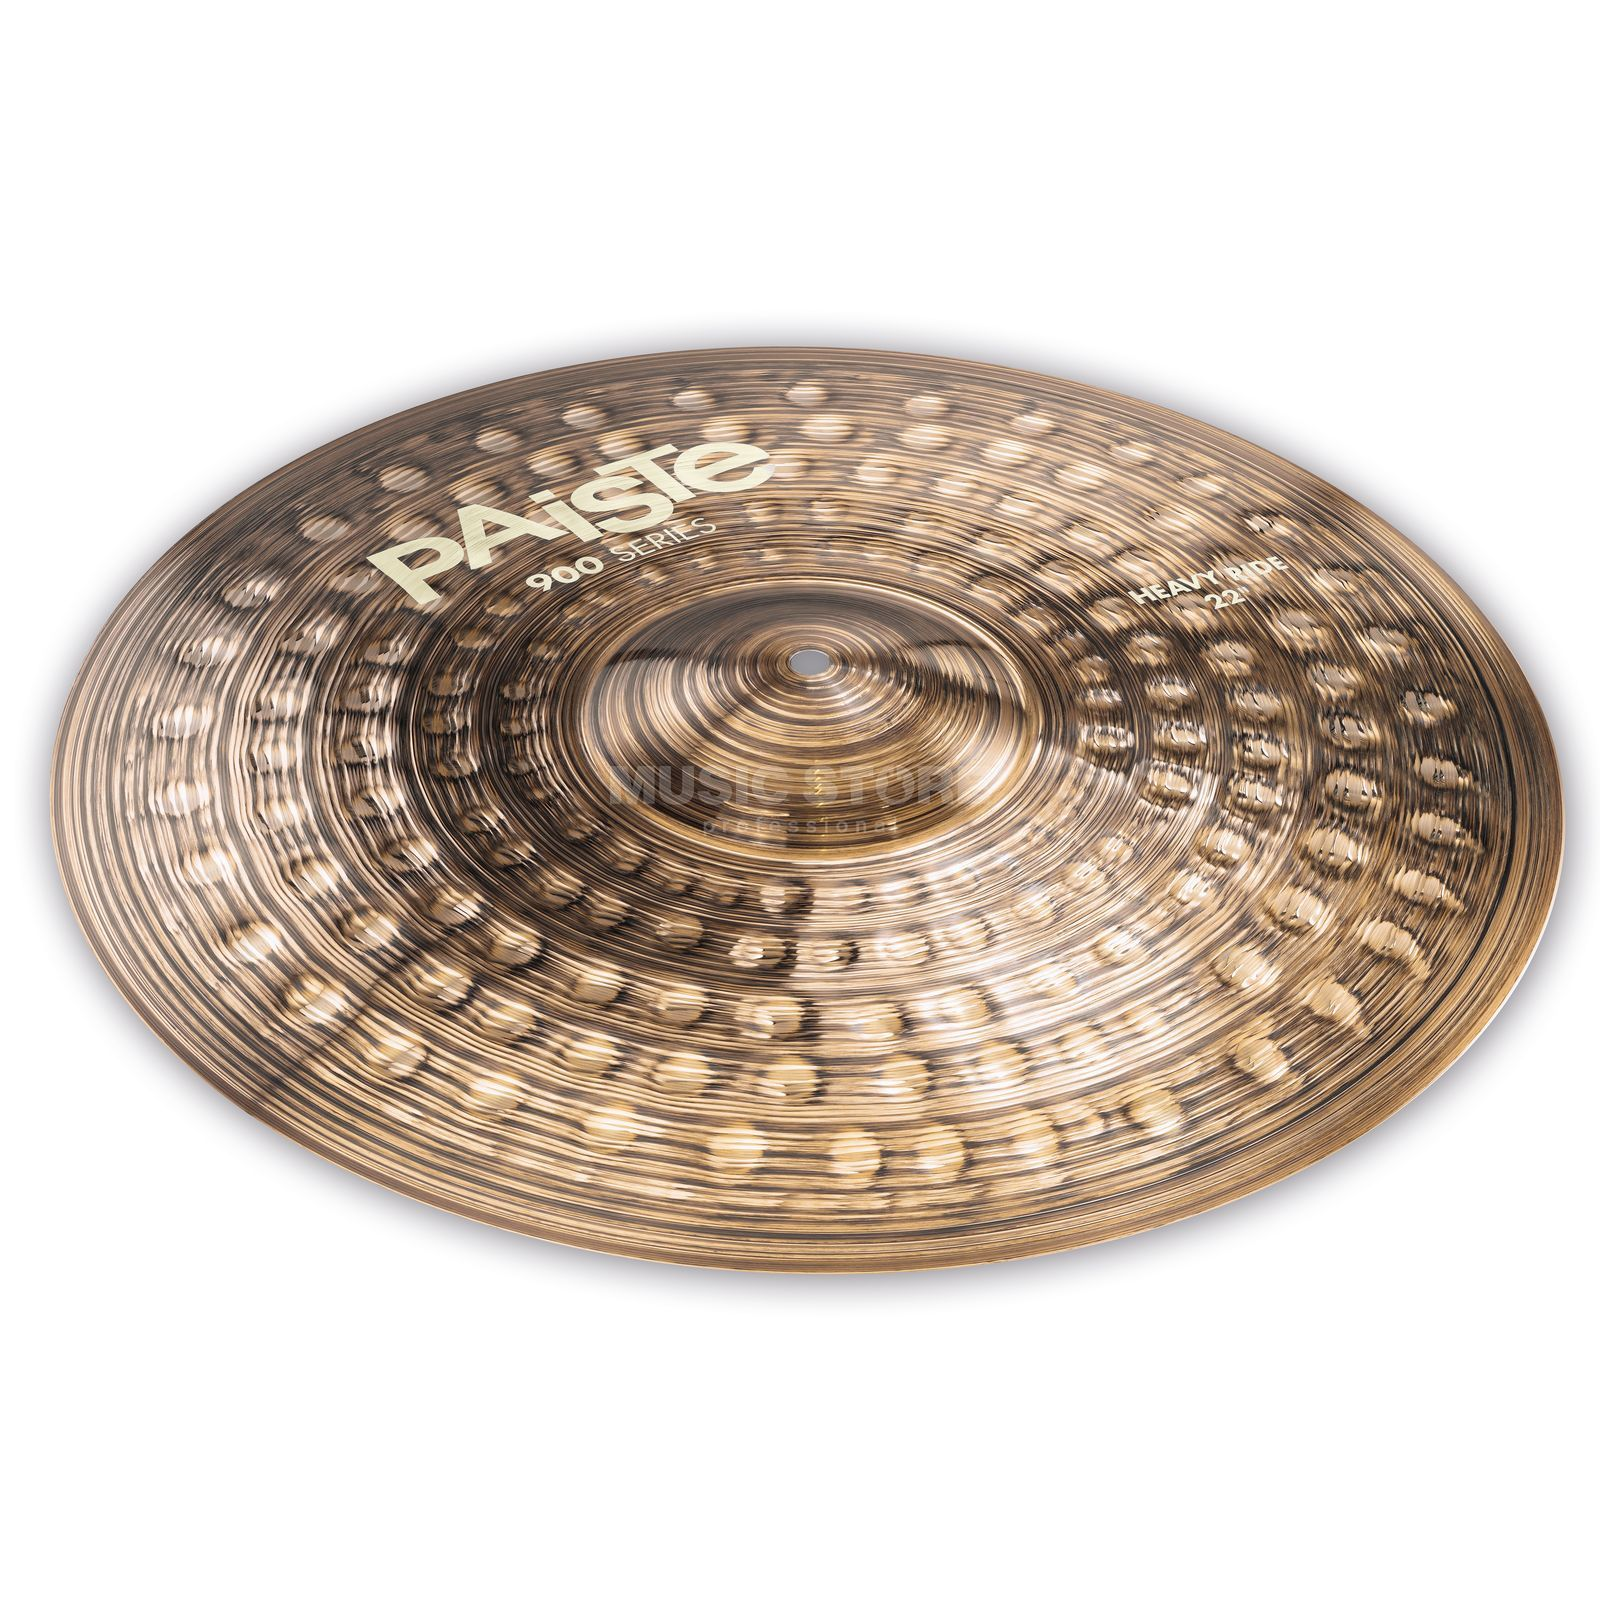 "Paiste 900 Series Heavy Ride 22"" Product Image"